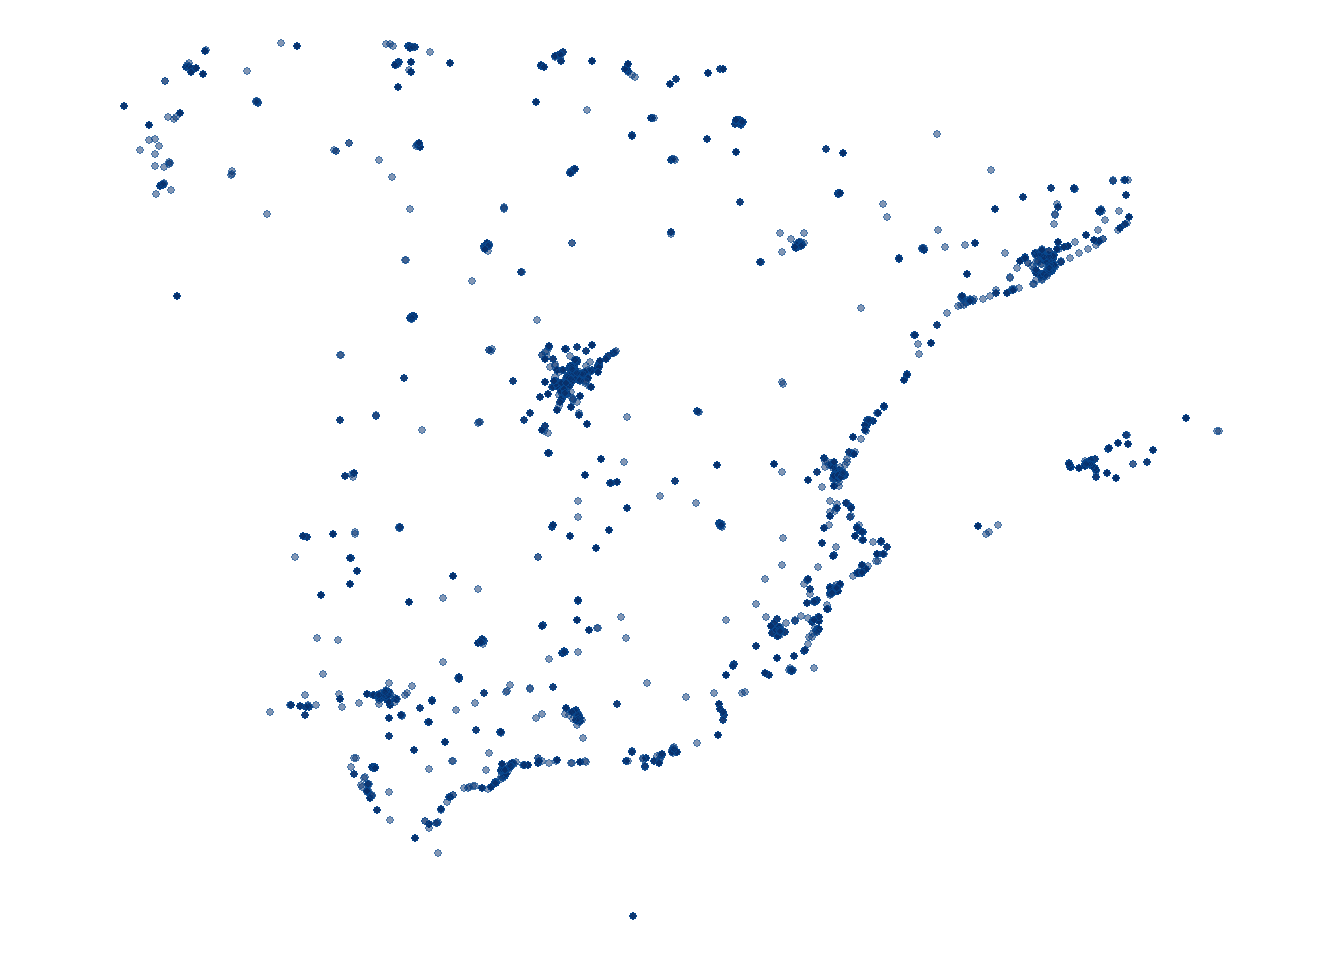 Accessing OpenStreetMap data with R